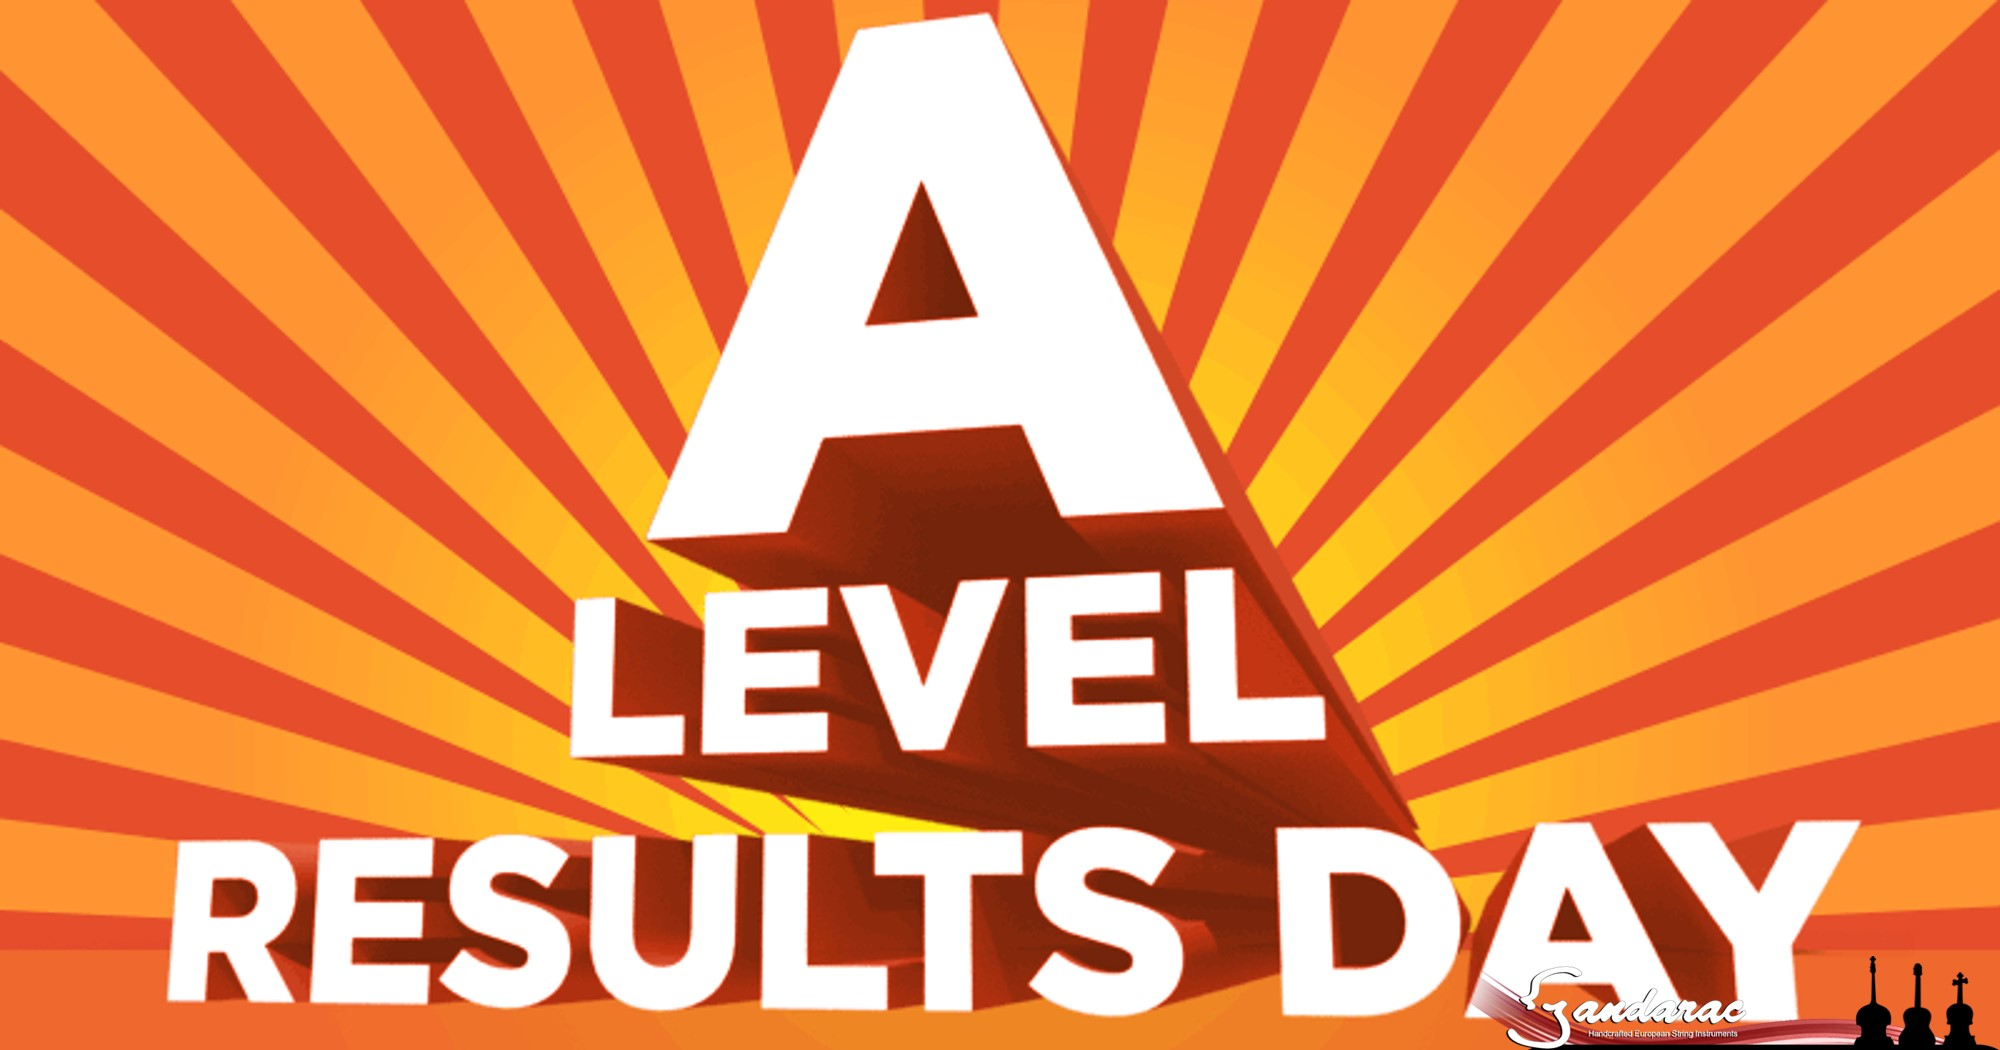 18 - A level results